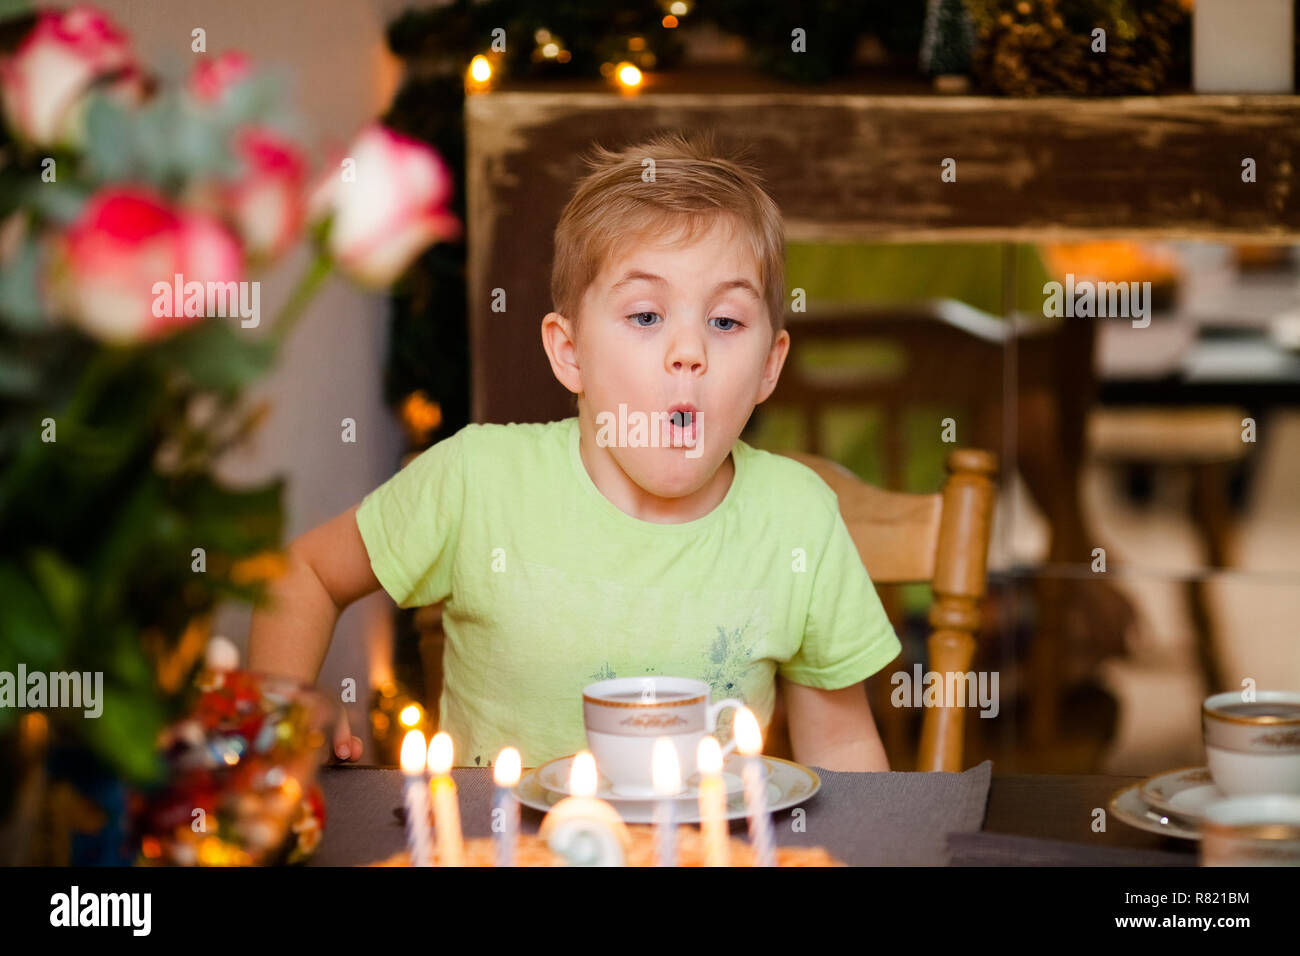 Beautiful Adorable Six Year Old Boy In Green Shirt Celebrating His Birthday Blowing Candles On Homemade Baked Cake Indoor